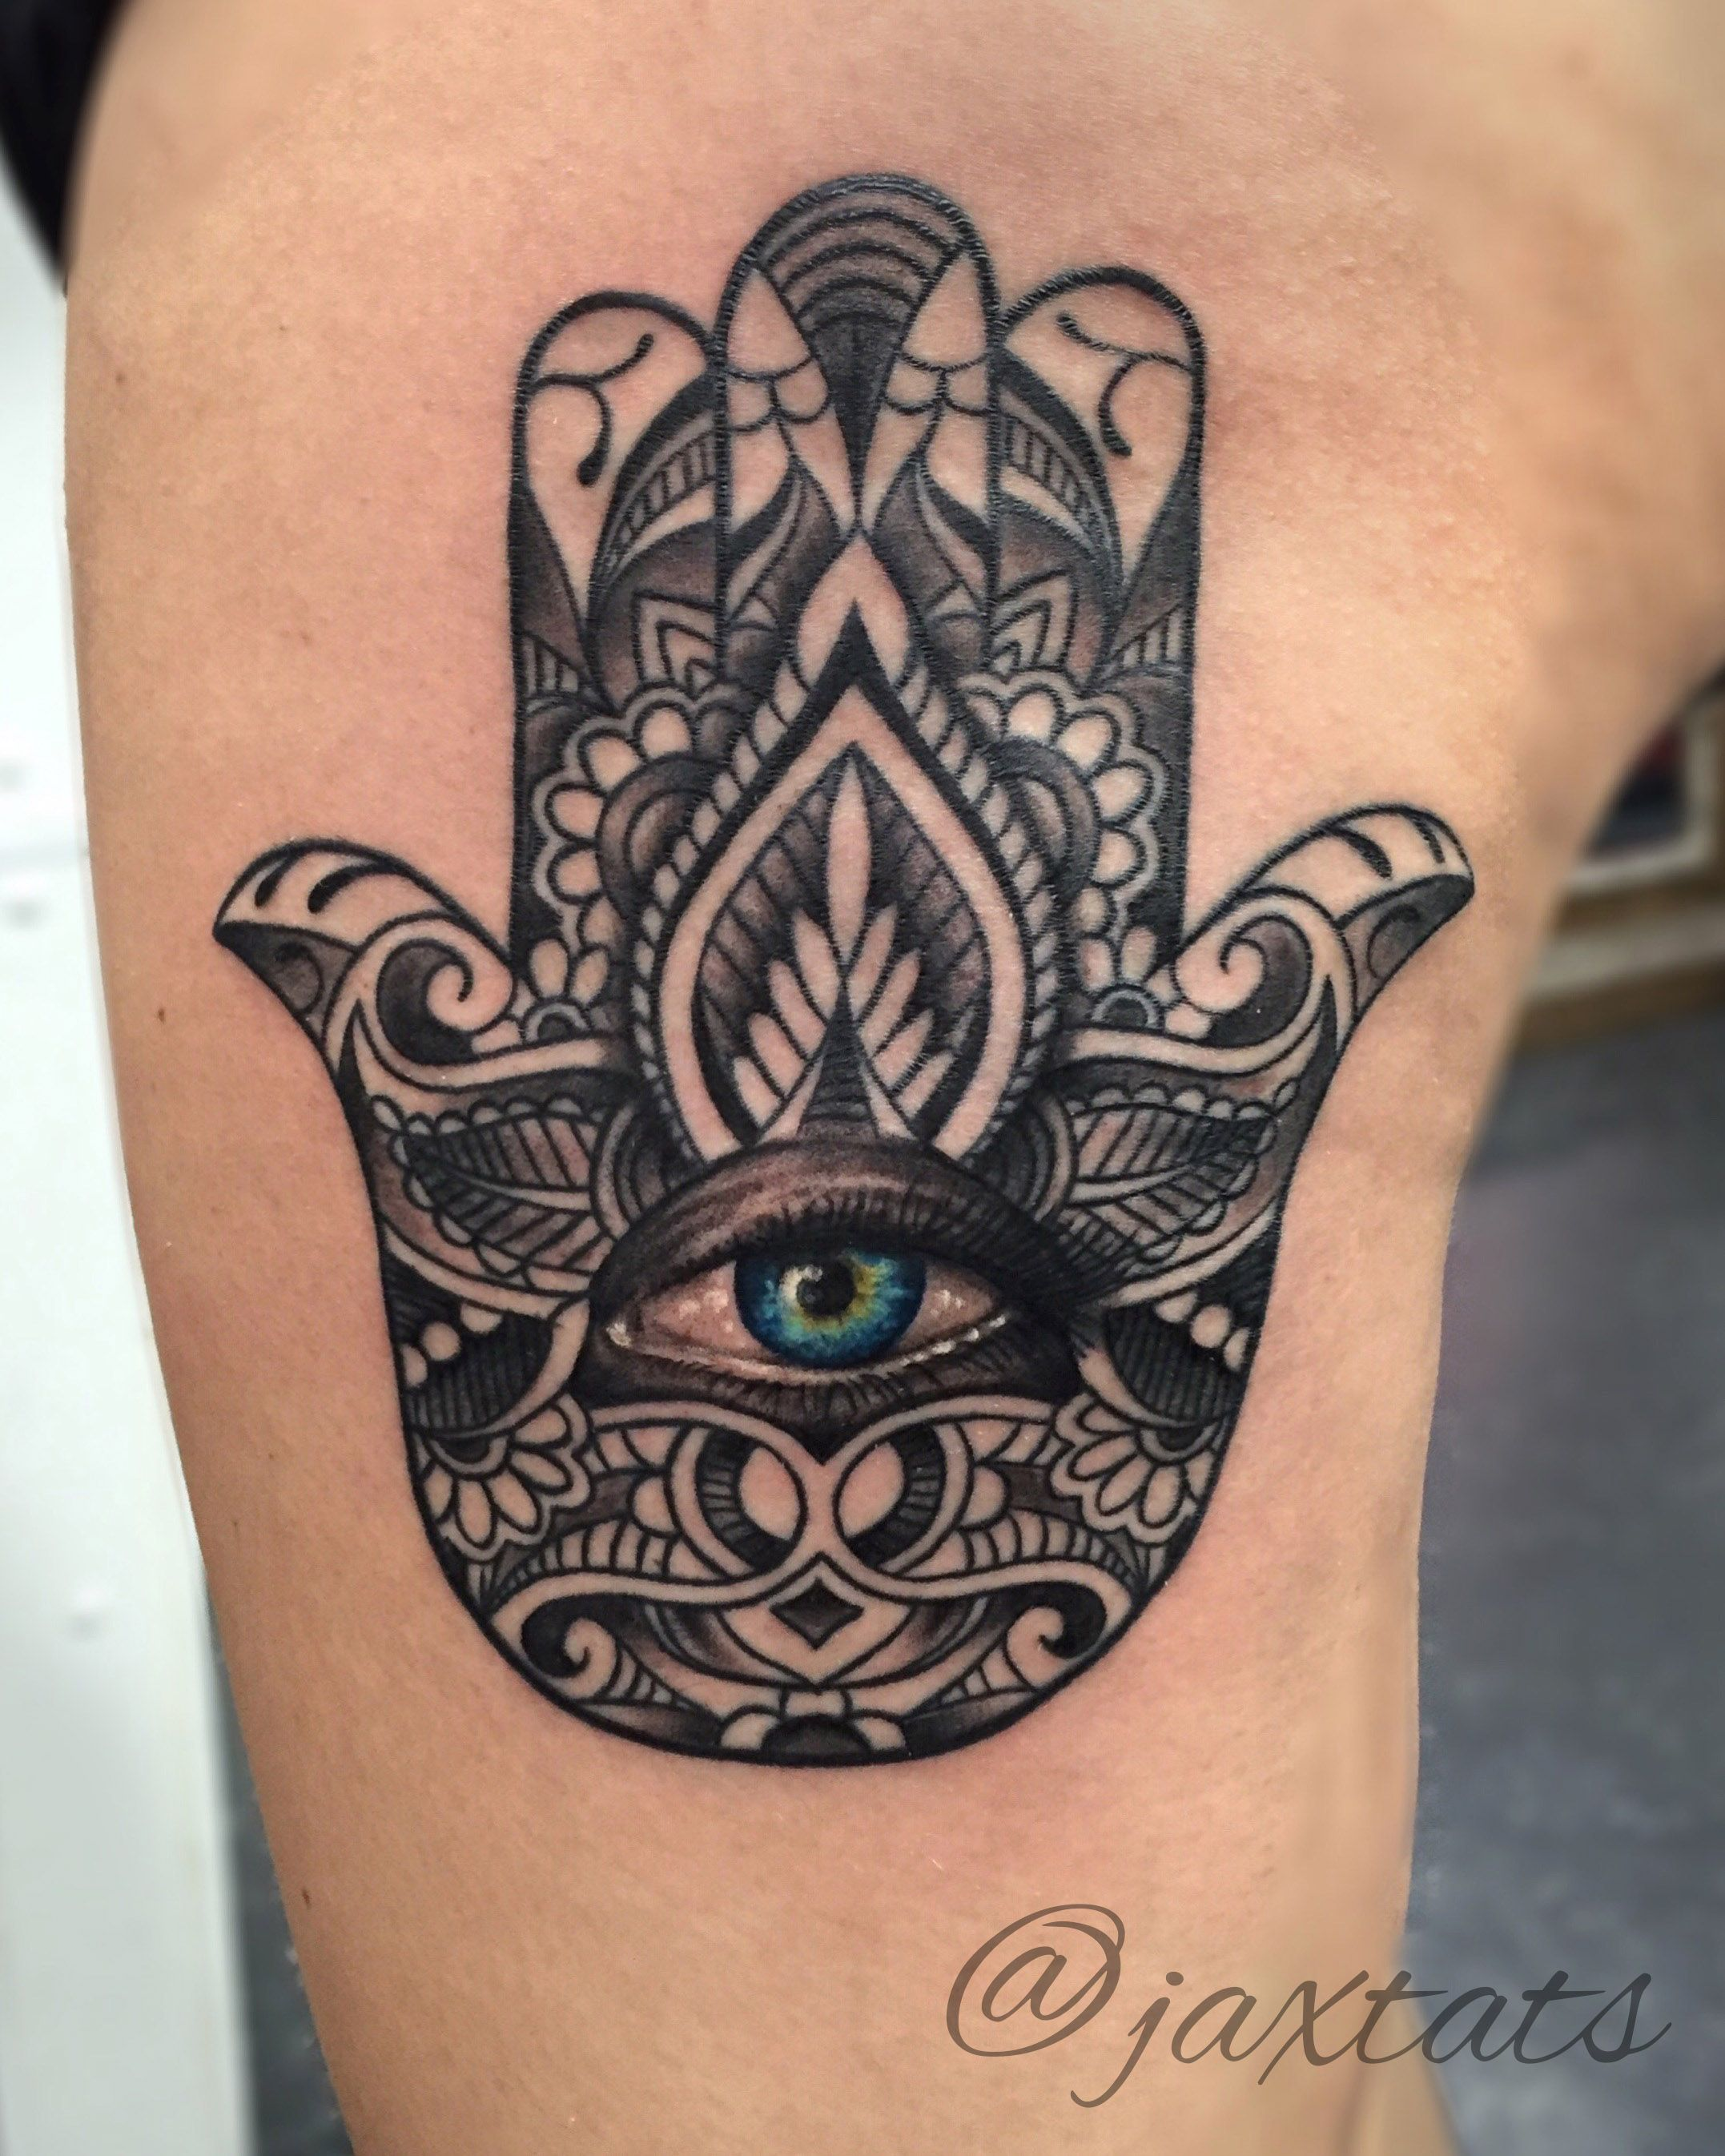 Hamsa Hand Tattoo With Realistic Blue Eye Girlswithtattoos Ink